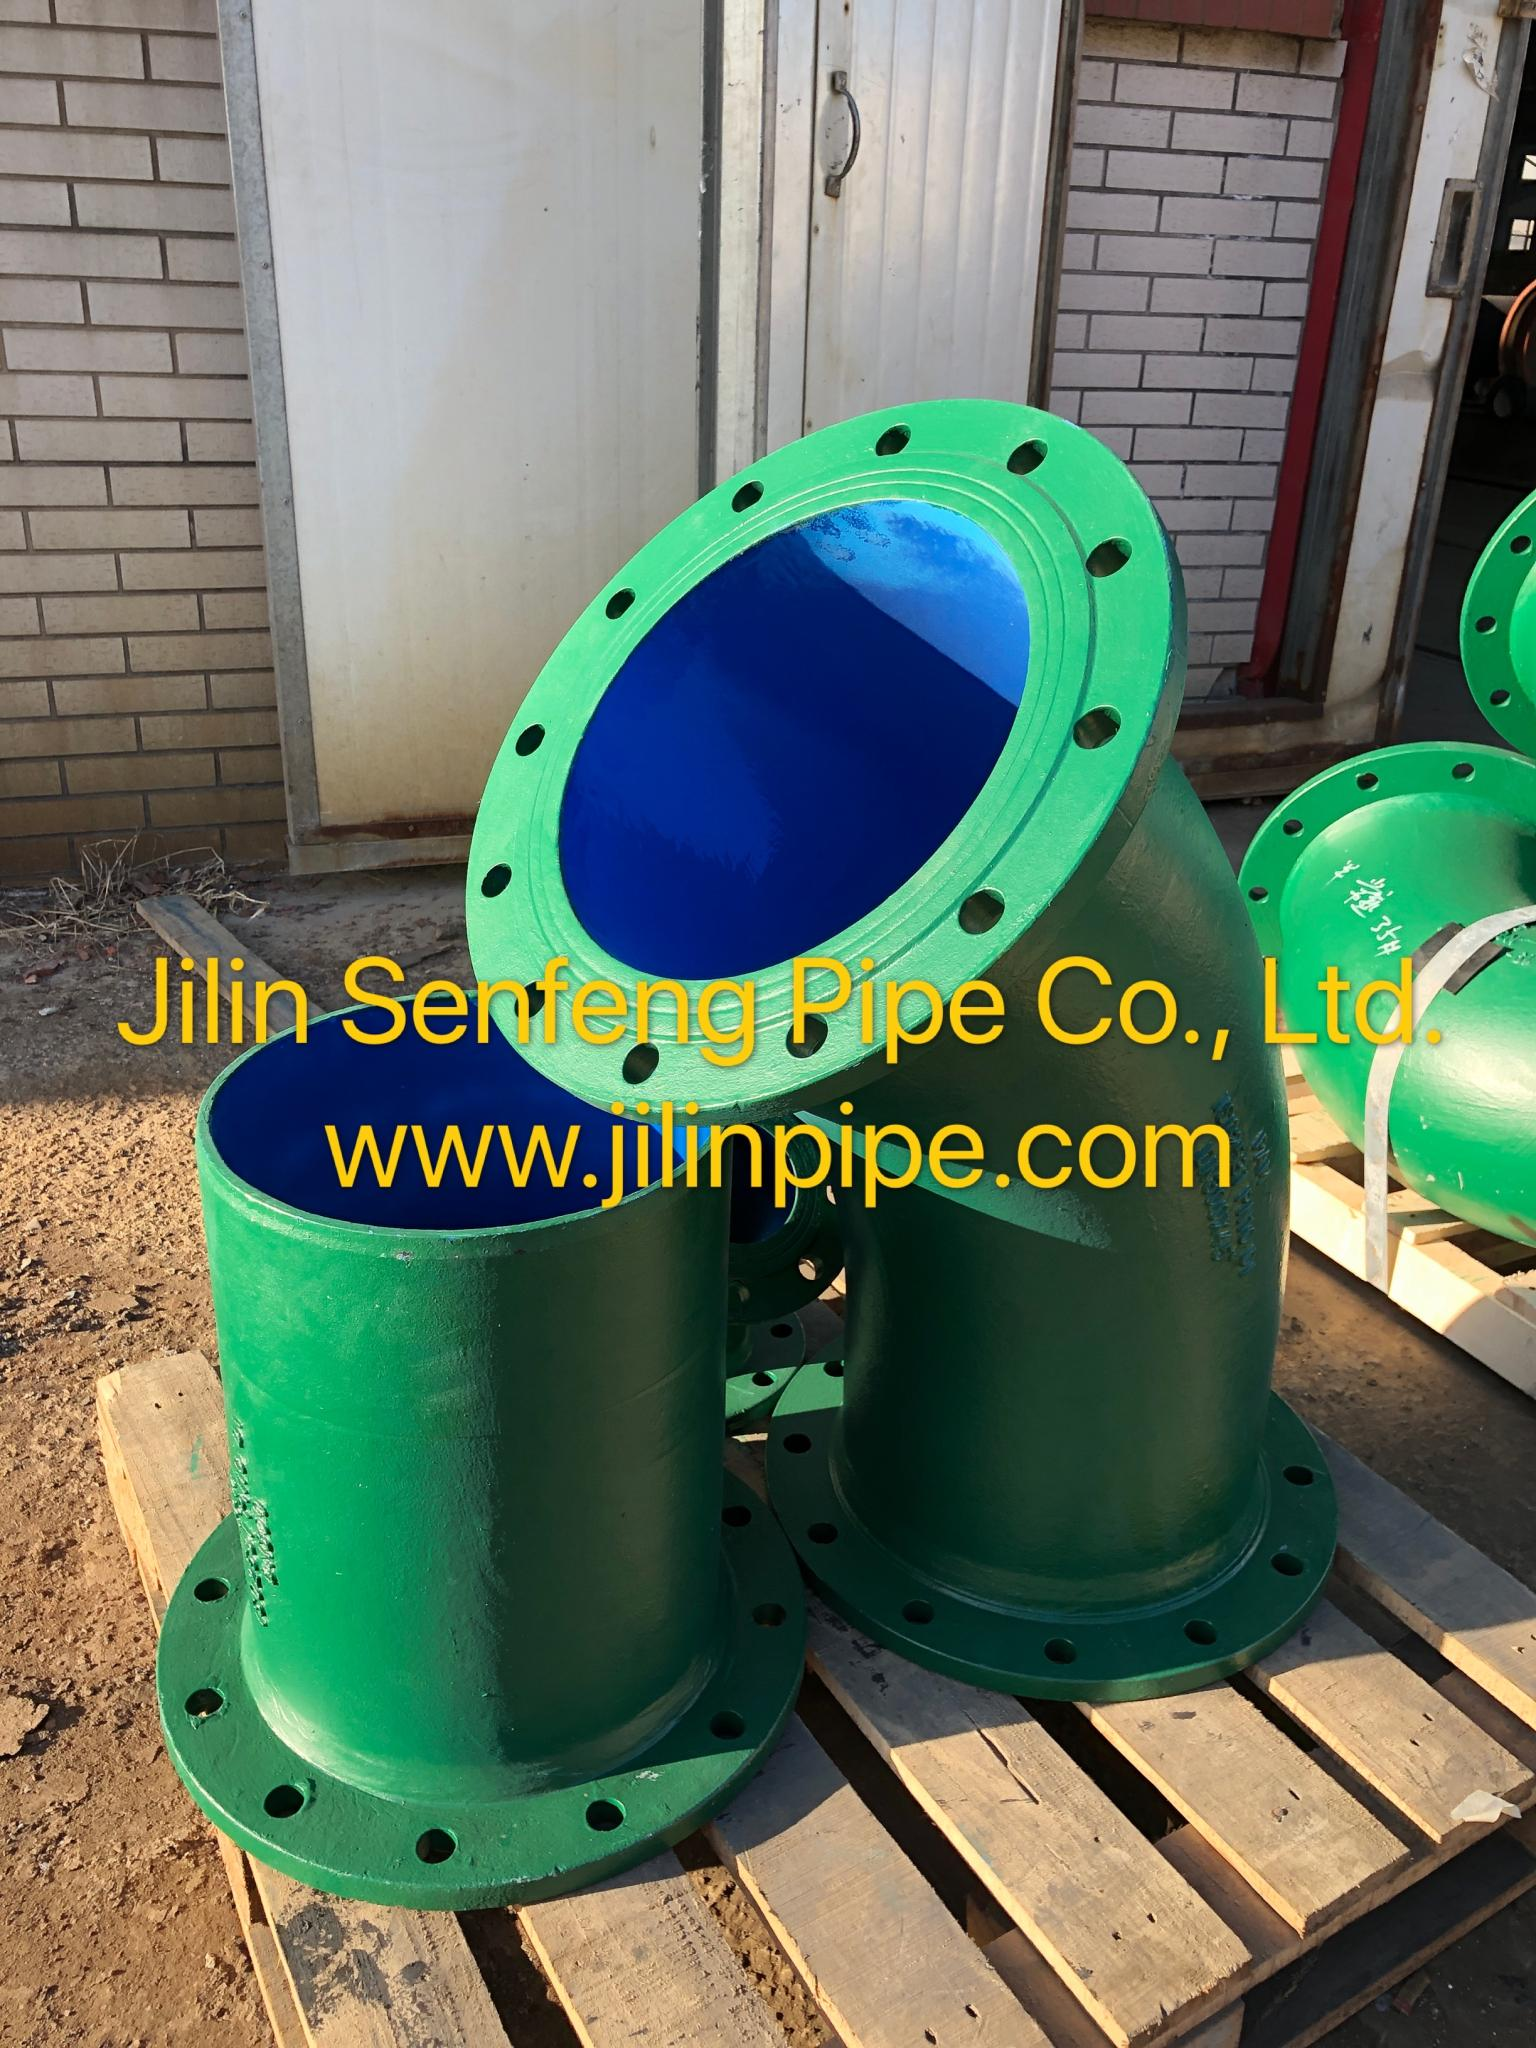 Flanged Spigots ductile iron pipe fittings ISO2531 BSEN545 BSEN598